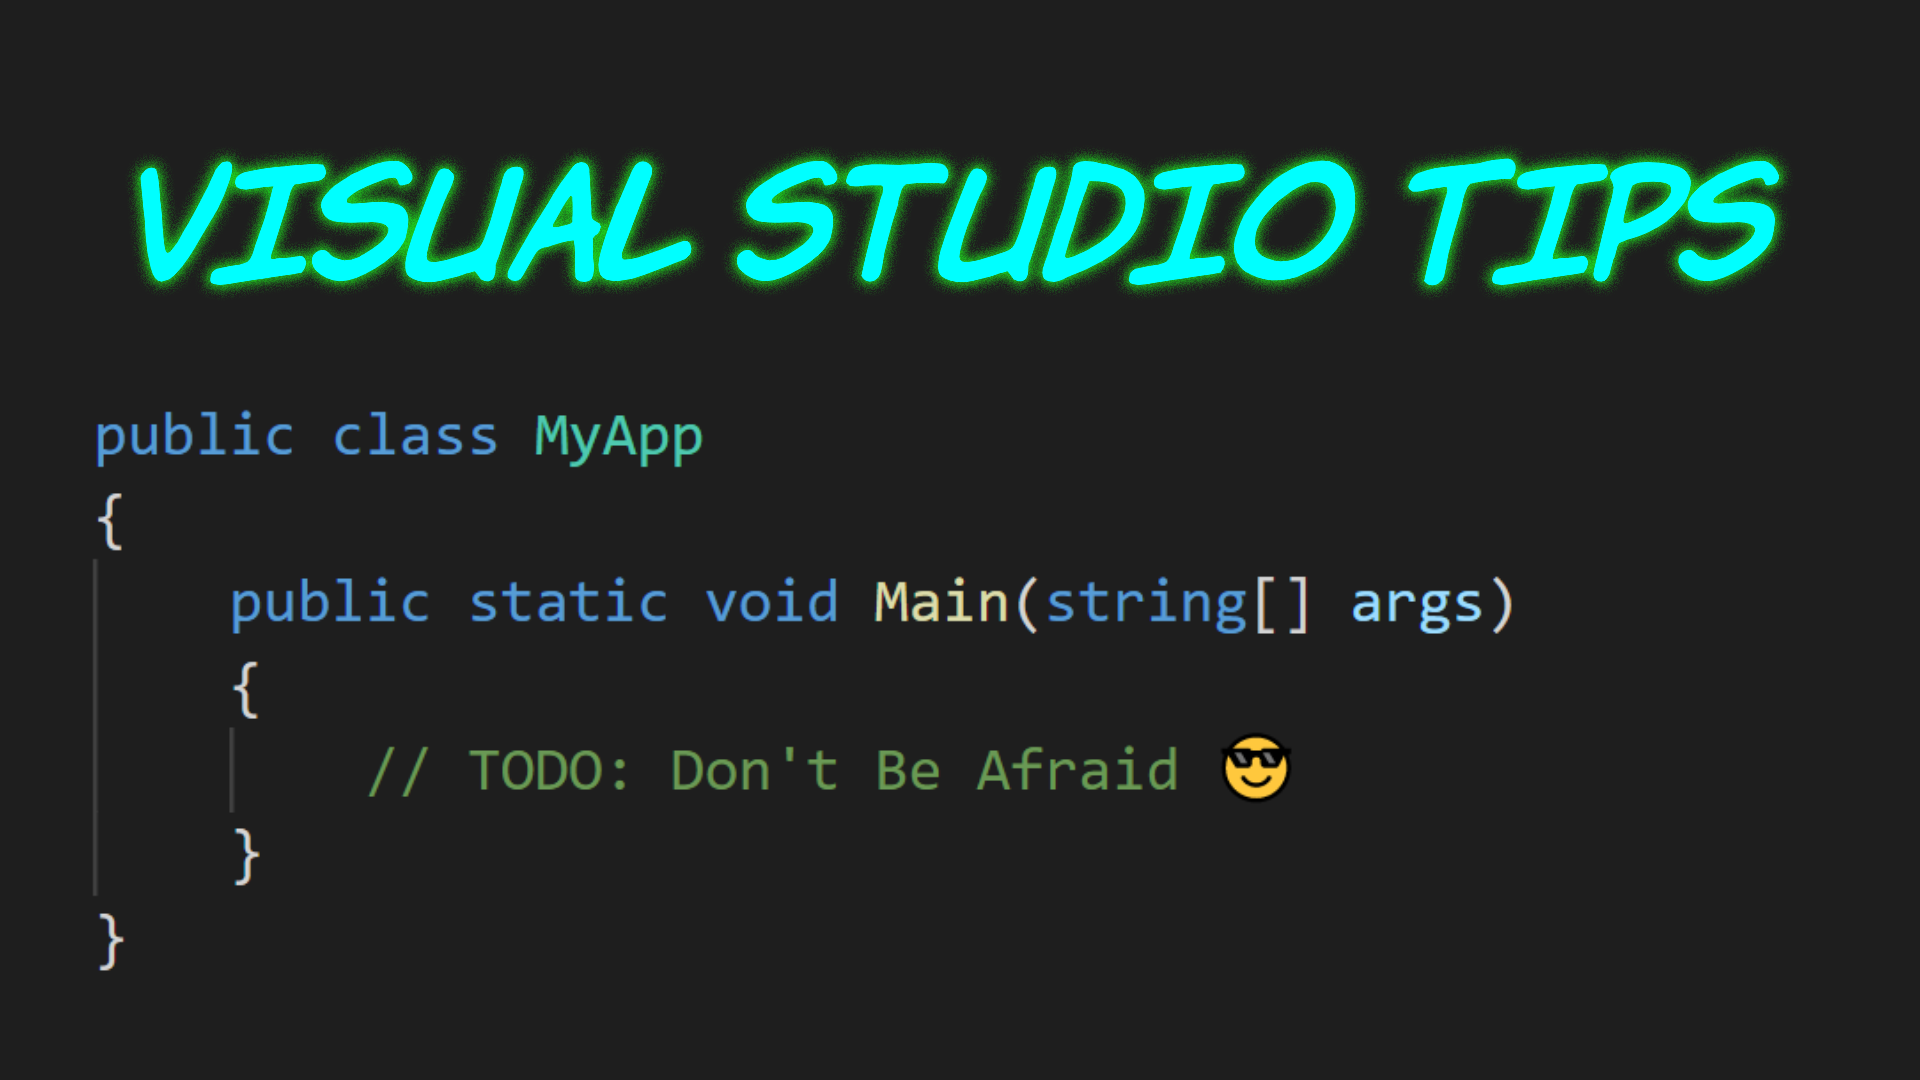 A CSharp class named App with a Main() method and a single comment that says 'TODO: Don't be afraid' with a sunglasses emoji.